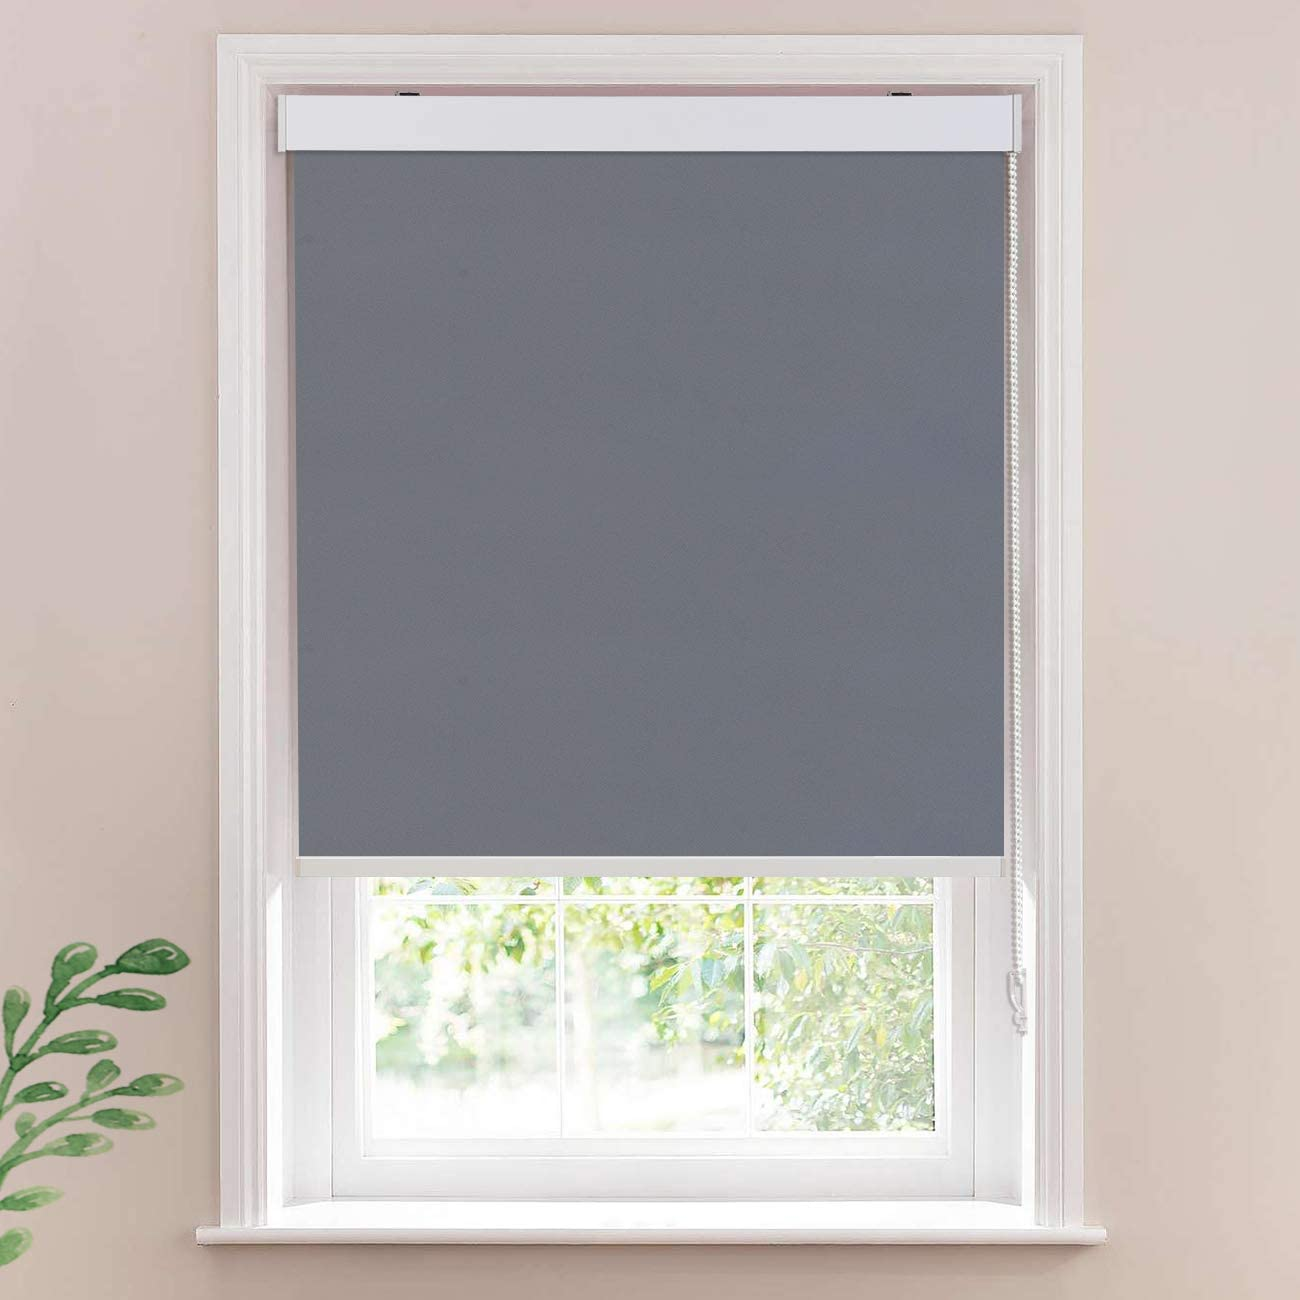 Keego Window Roller Blinds Office Blackout Window Shades, Room Darkning Bedroom Privacy Shades Thermal Insulated for Living Room Gray 100 Blackout,32 W x 60 H Inch